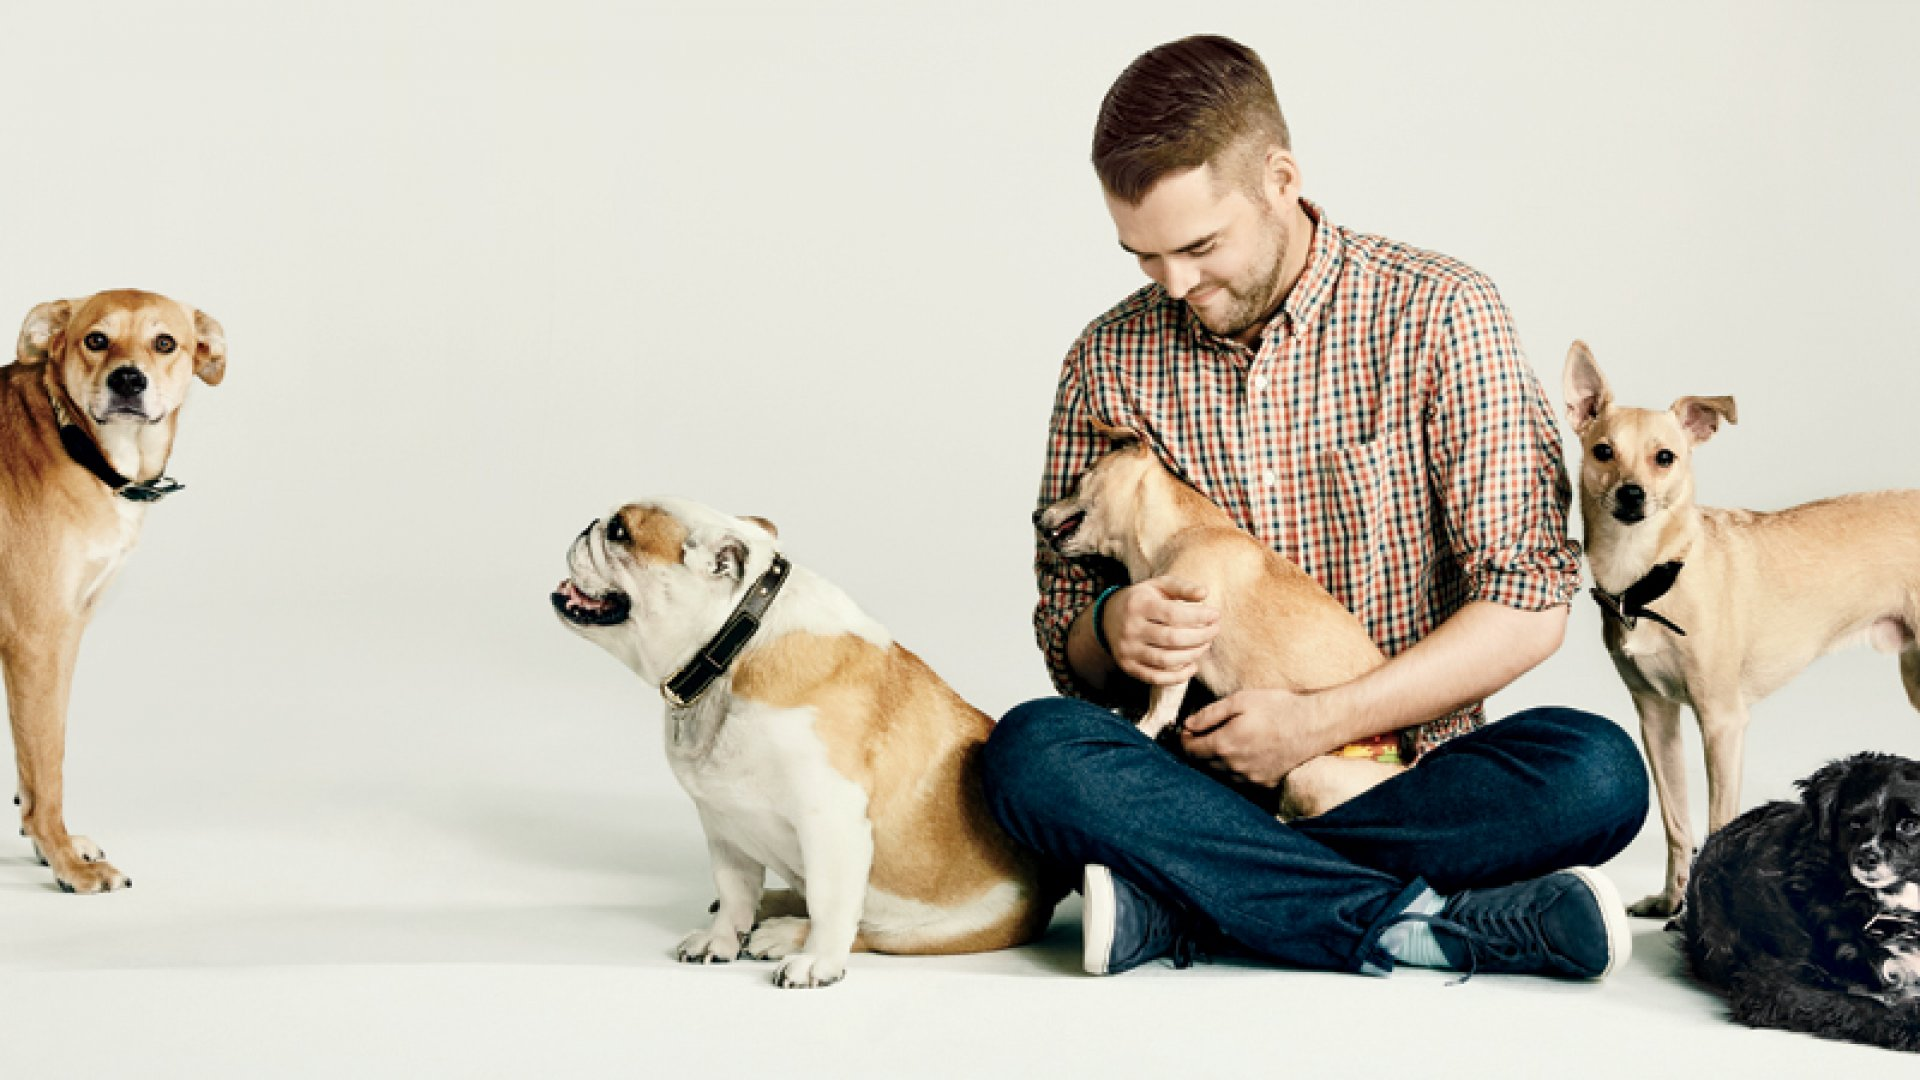 This Entrepreneur Saved His Puppy--and Launched a Company in the Process